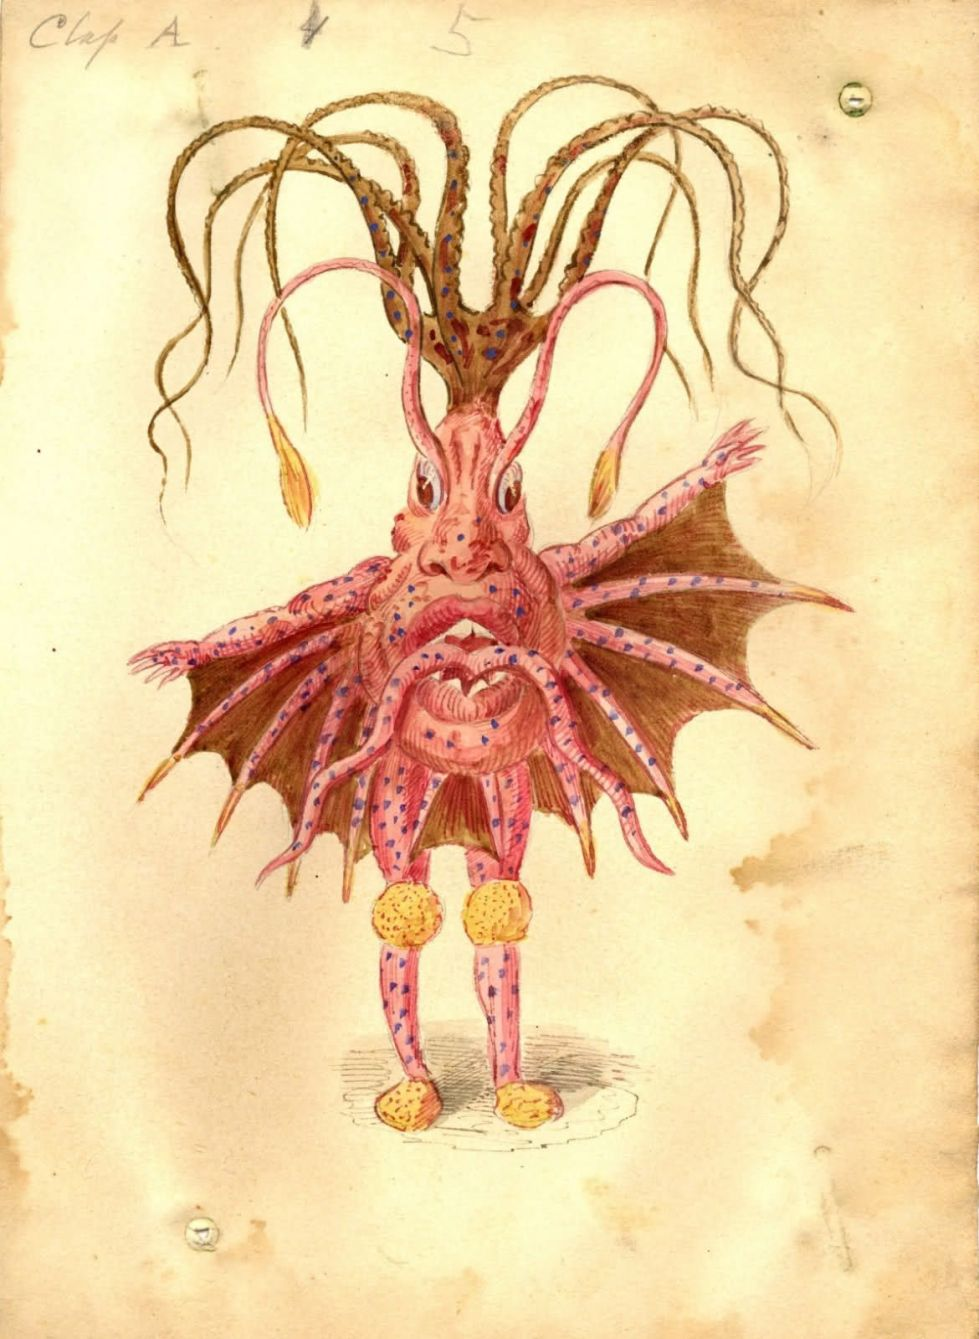 19th century sea creature costume